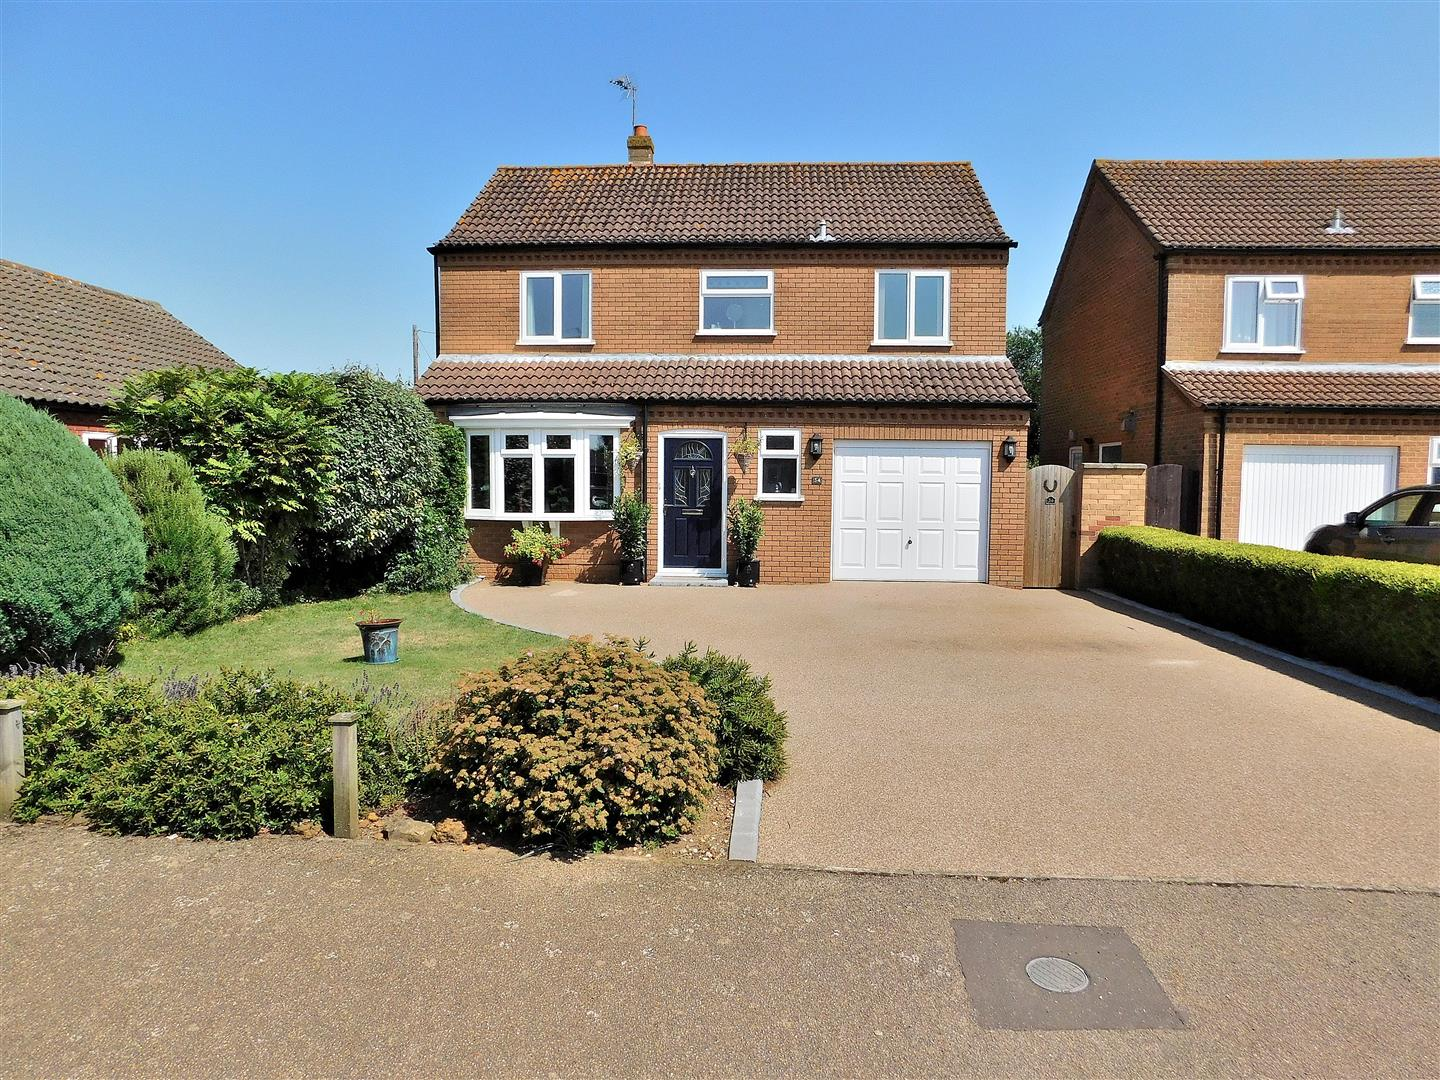 4 bed detached house for sale in King's Lynn, PE31 6XZ - Property Image 1